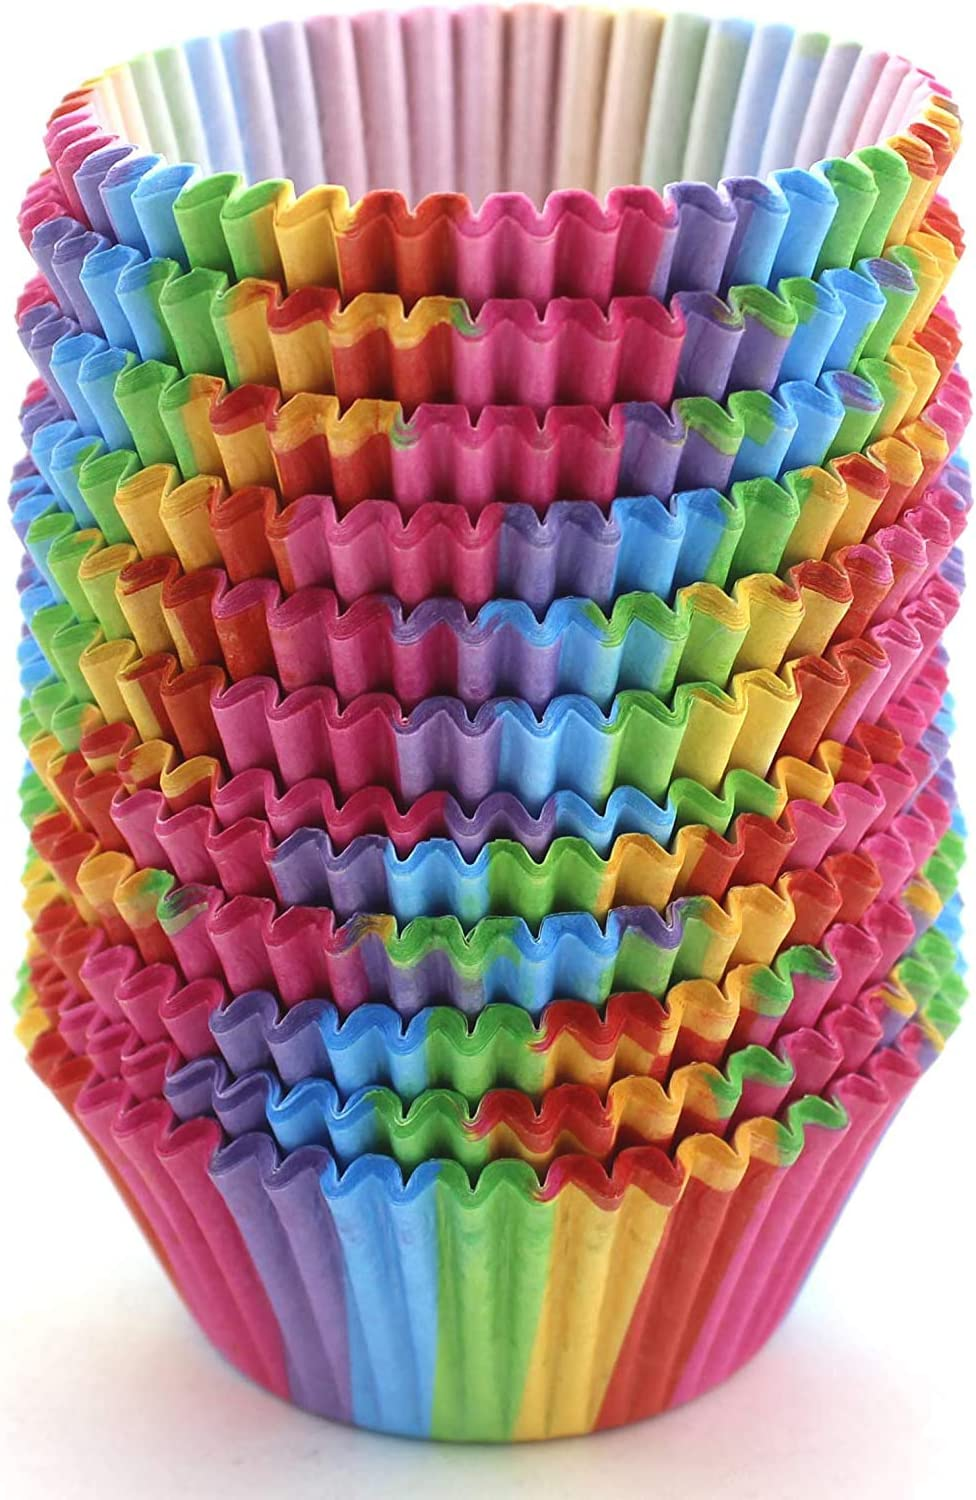 WARMBUY Rainbow Cupcake Papers Baking Cup Max 87% OFF 300 Ranking TOP10 Pcs Liners